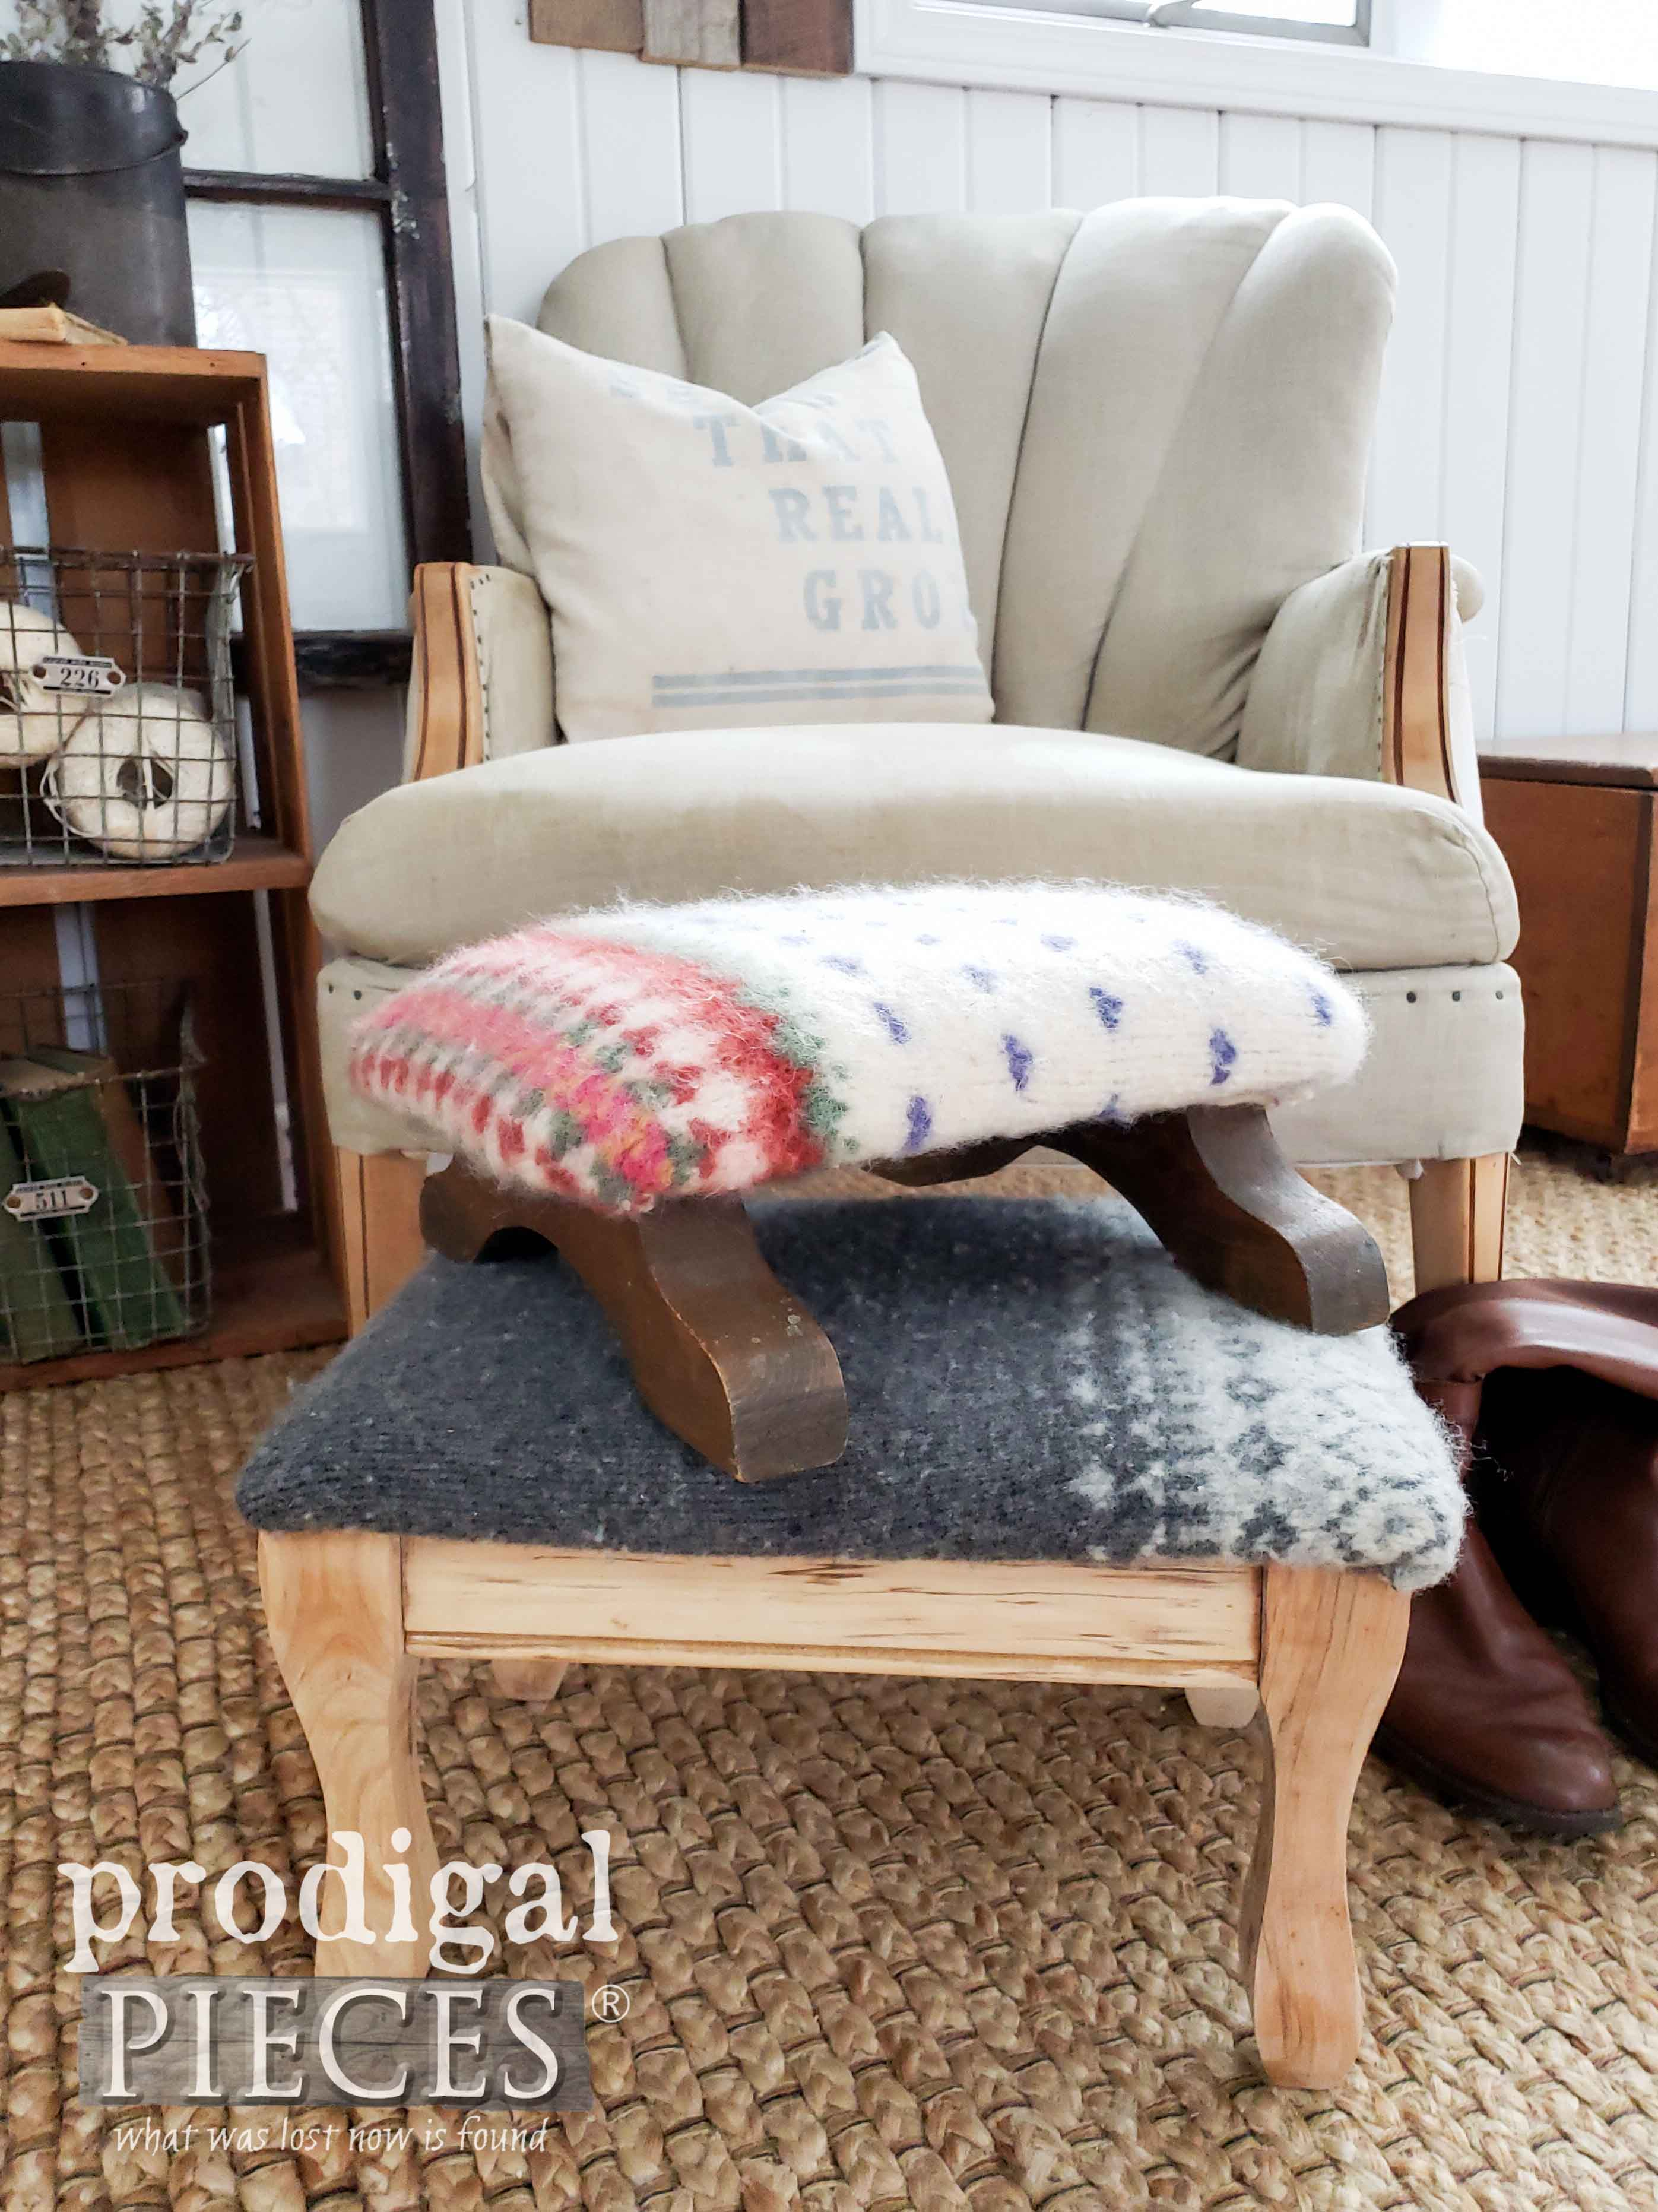 Nordic Farmhouse Style Felted Footstools Created by Larissa of Prodigal Pieces using Thrifted Sweaters | Video Tutorial at prodigalpieces.com #prodigalpieces #shopping #farmhouse #home #handmade #homedecorideas #homedecor #vintage